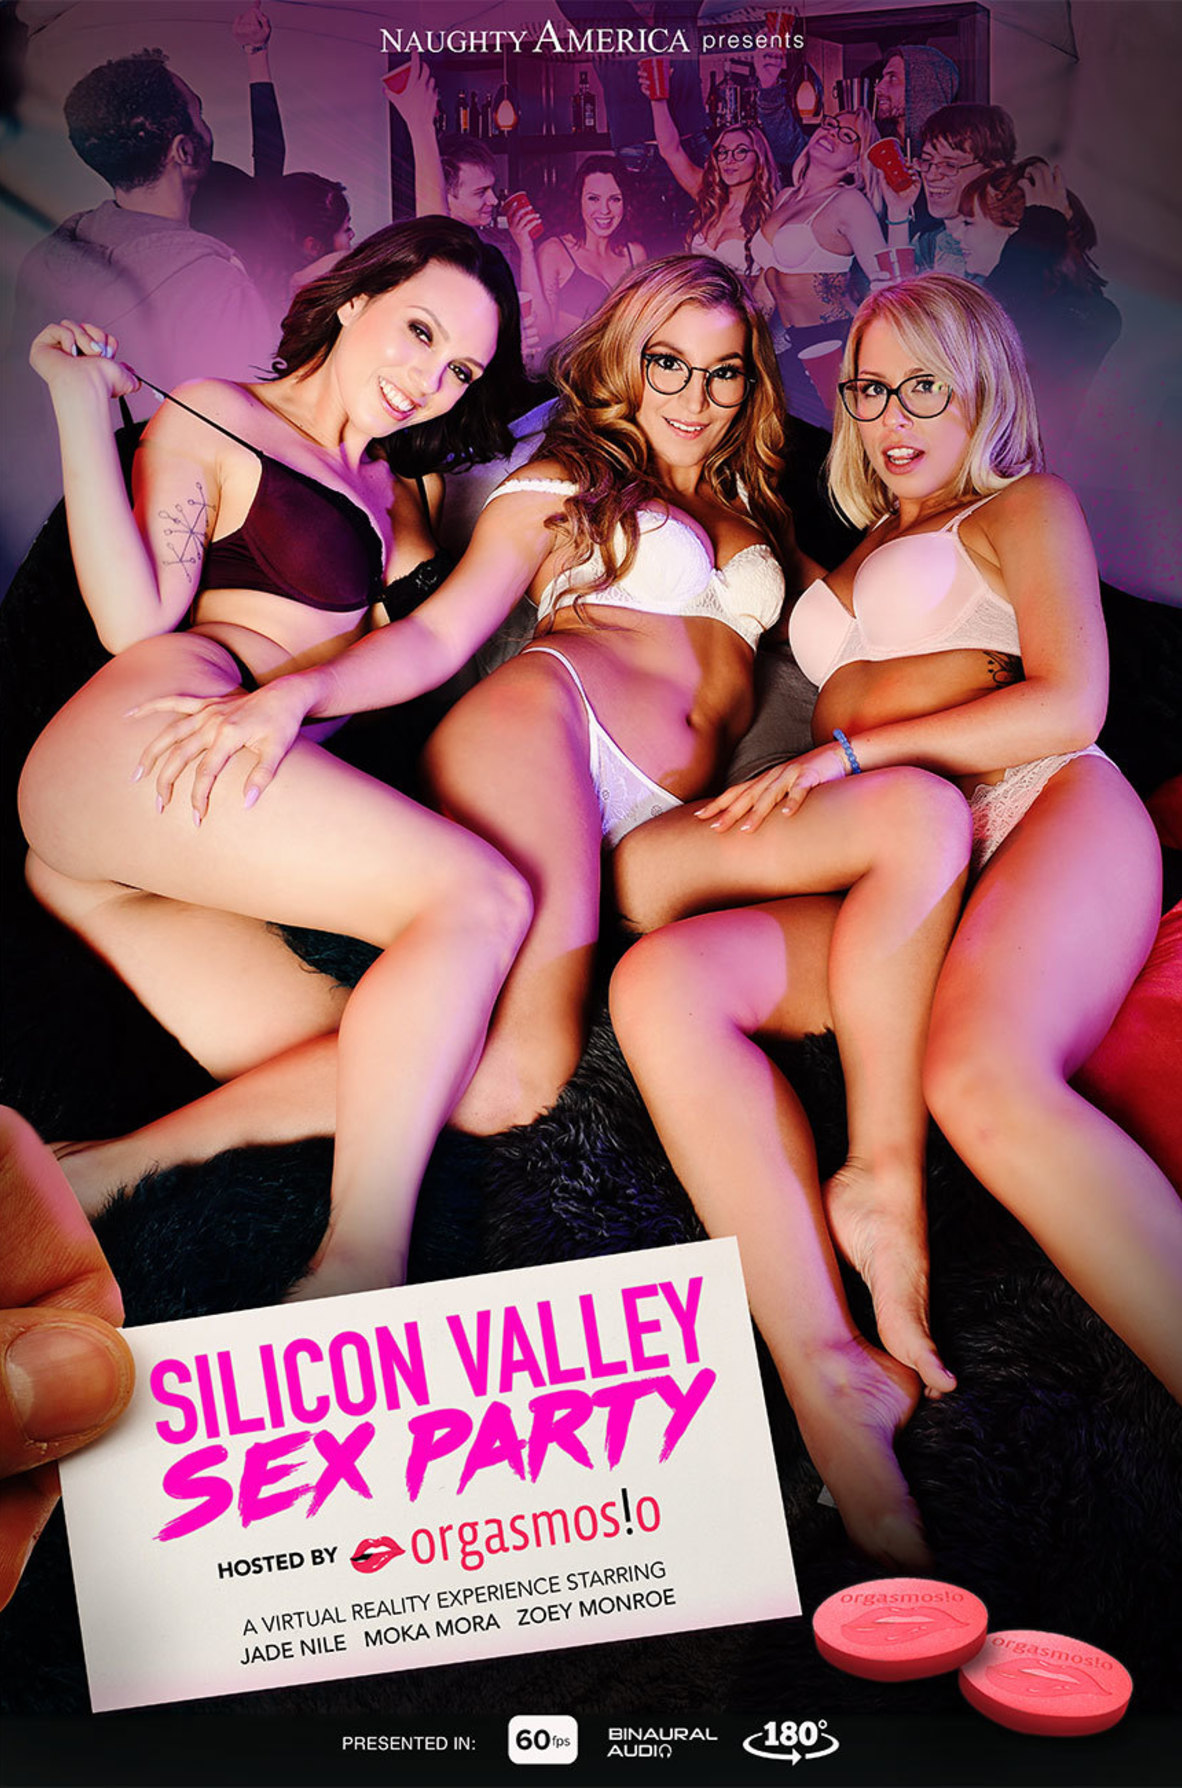 Watch Jade Nile, Moka Mora, Zoey Monroe, Dylan Snow and Ryan Driller VR video in Naughty America